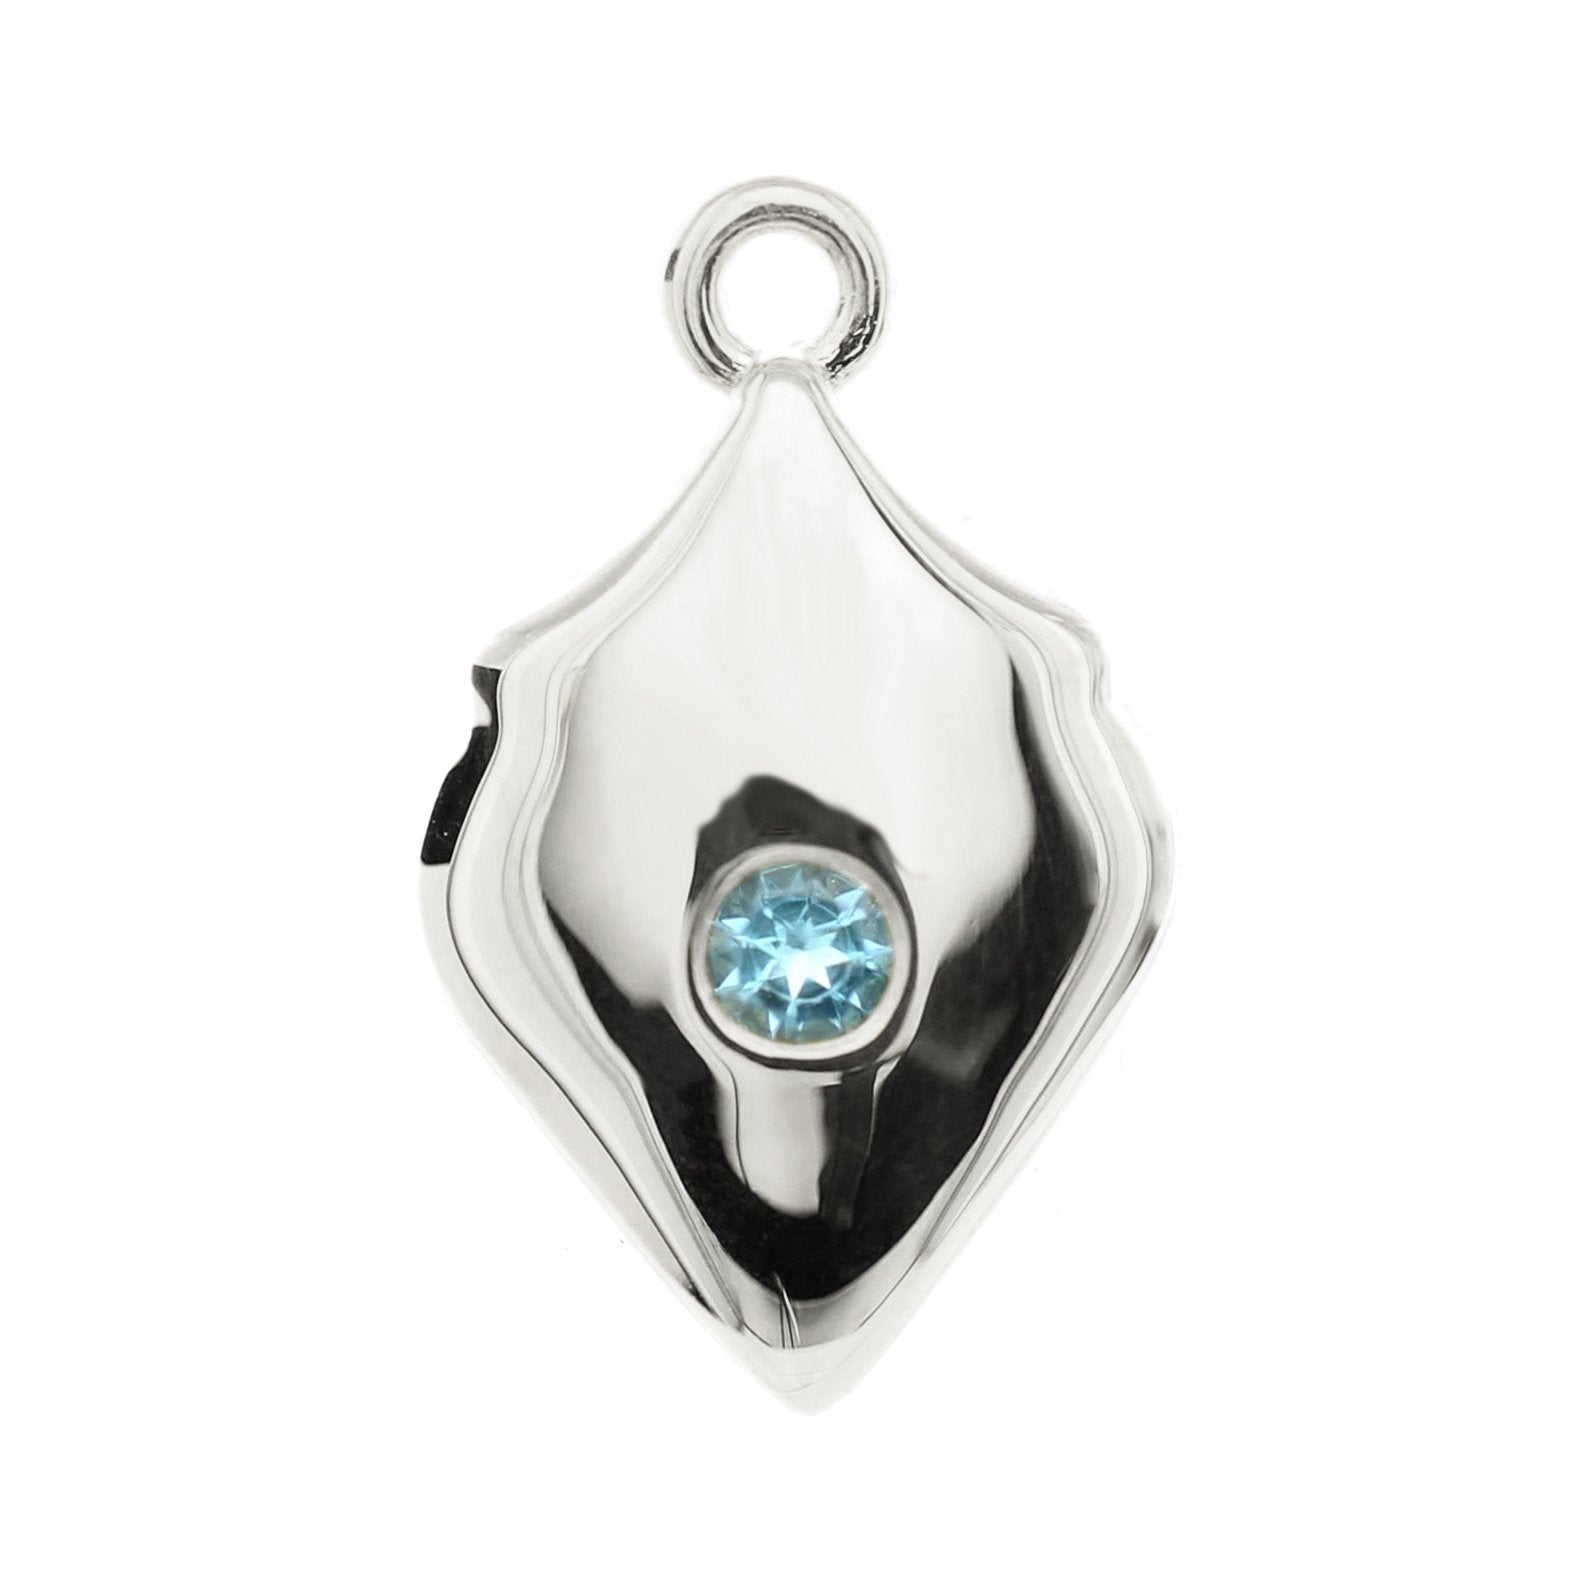 LEGACY DECEMBER BIRTHSTONE SHIELD ICON - BLUE TOPAZ & SILVER - SO PRETTY CARA COTTER